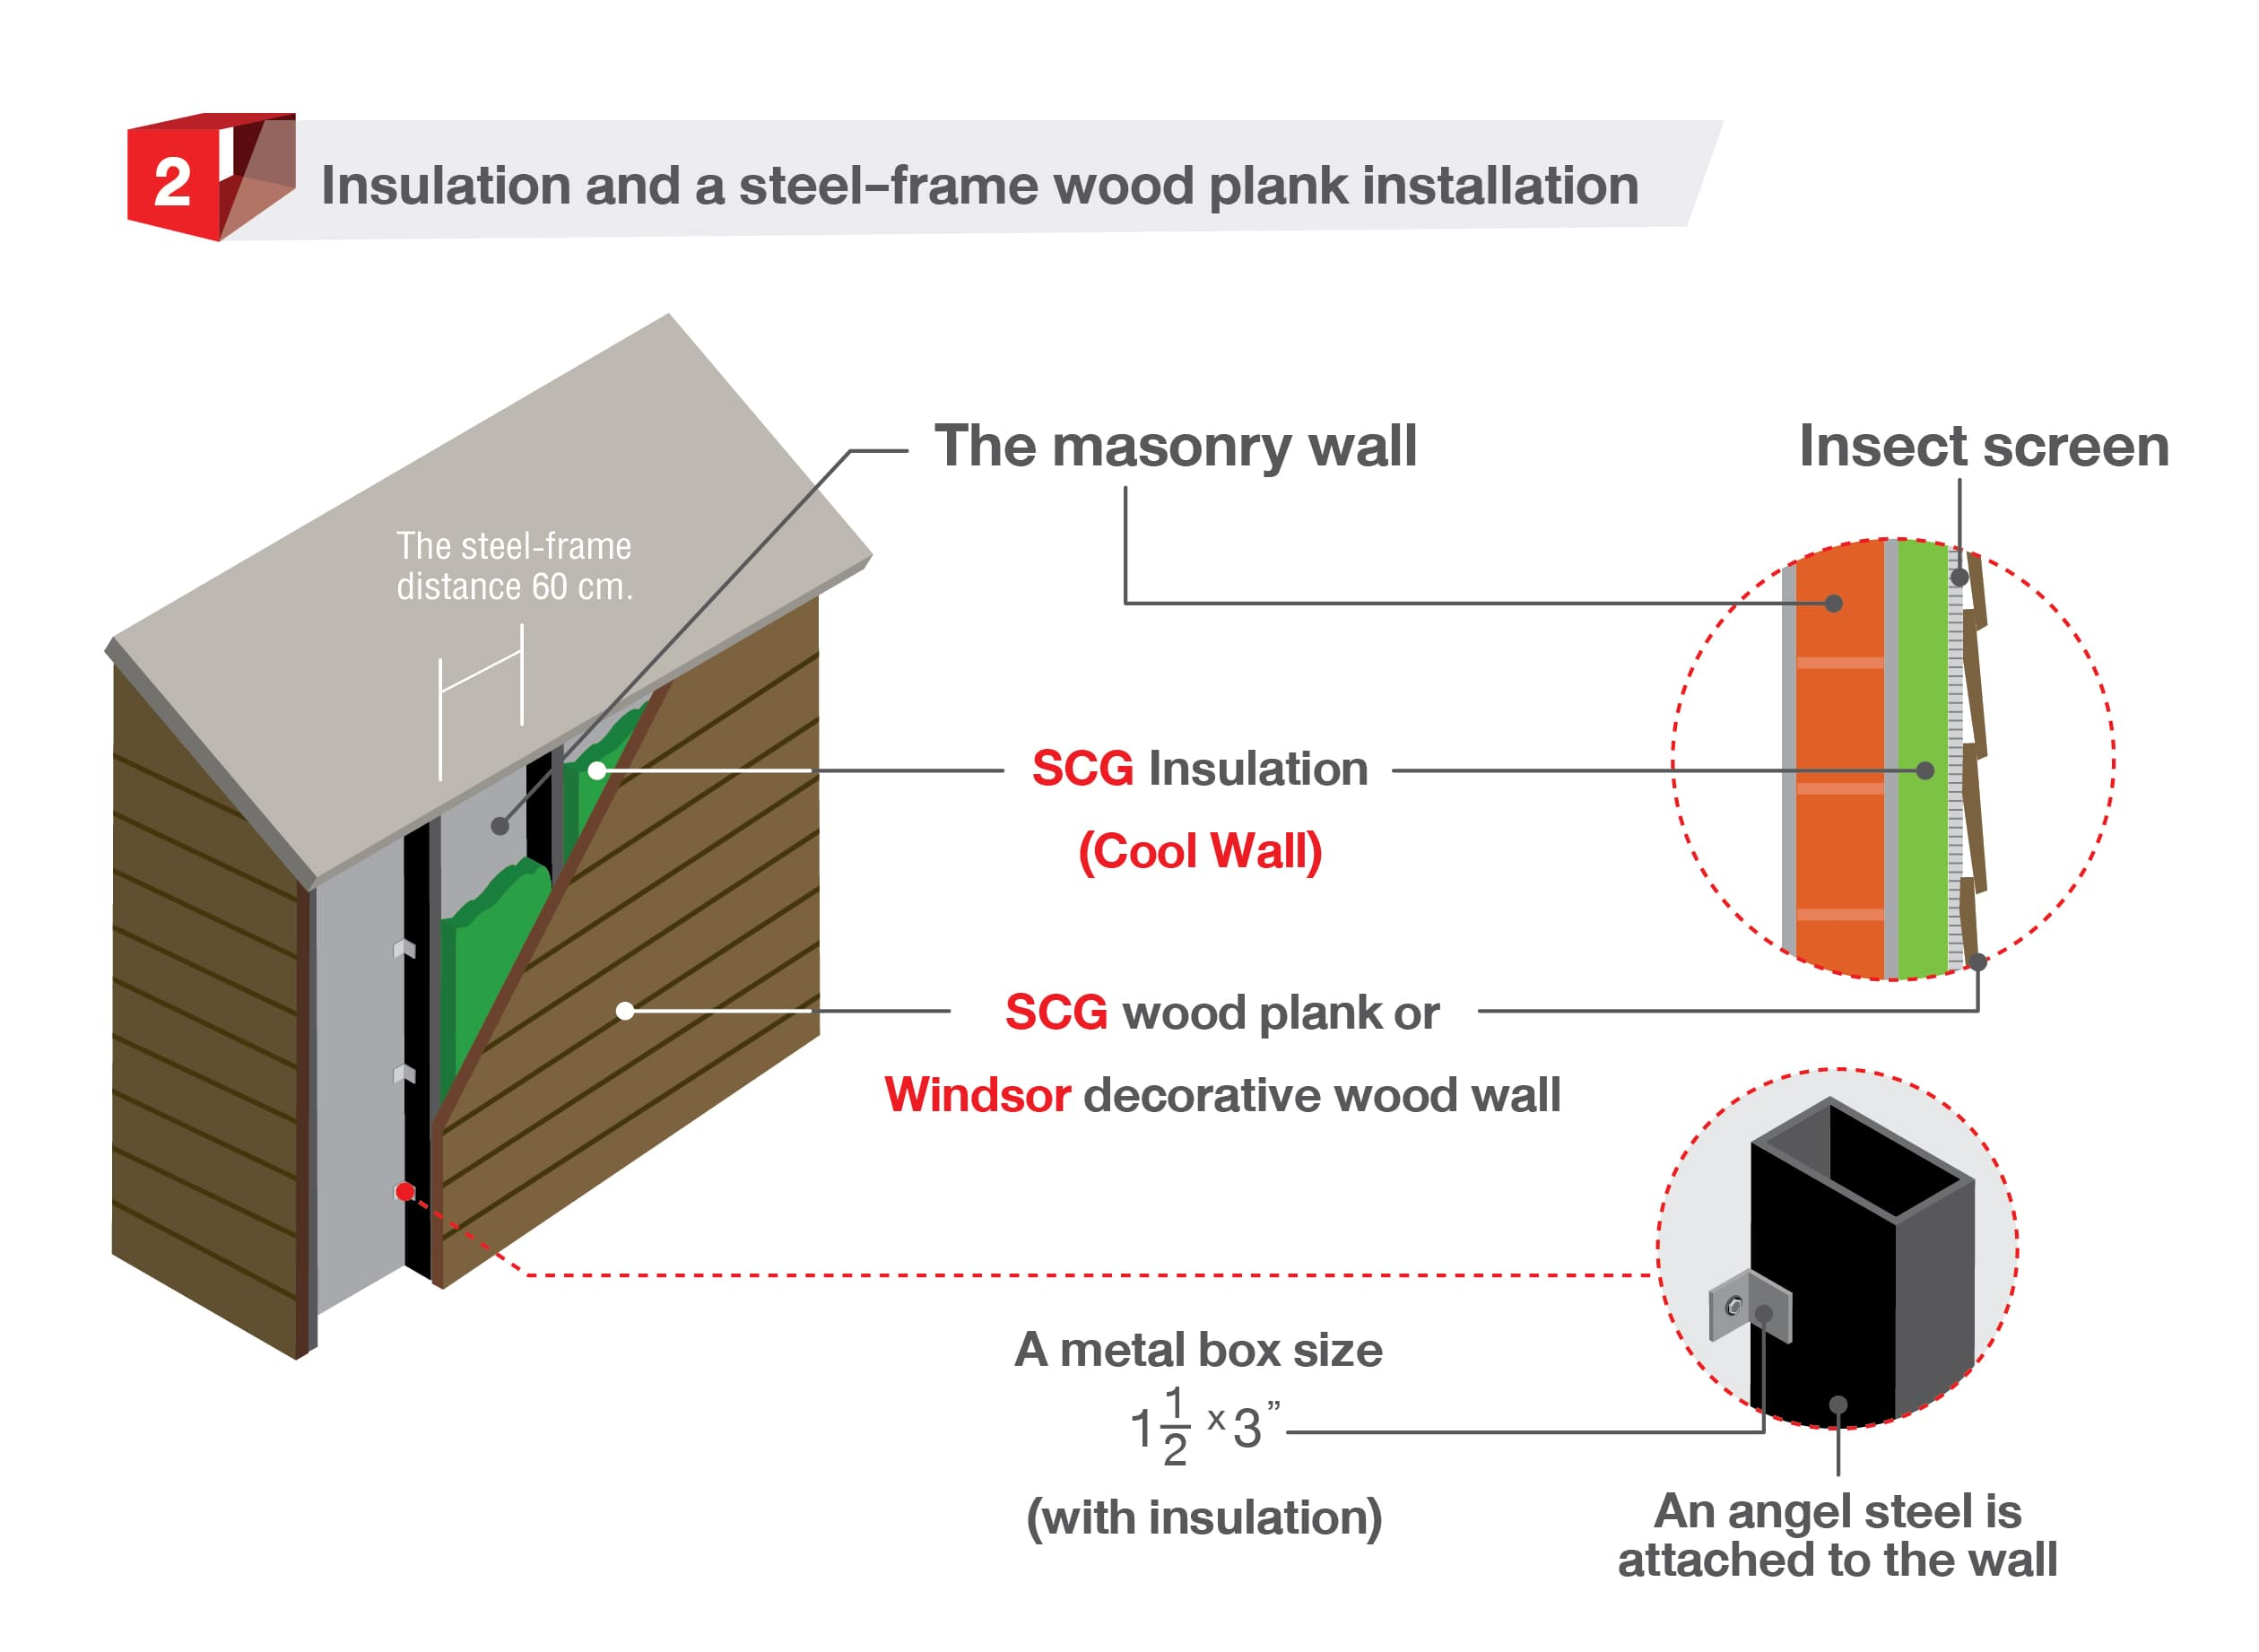 How to keep house cool with wood plank - How to install wall insulation